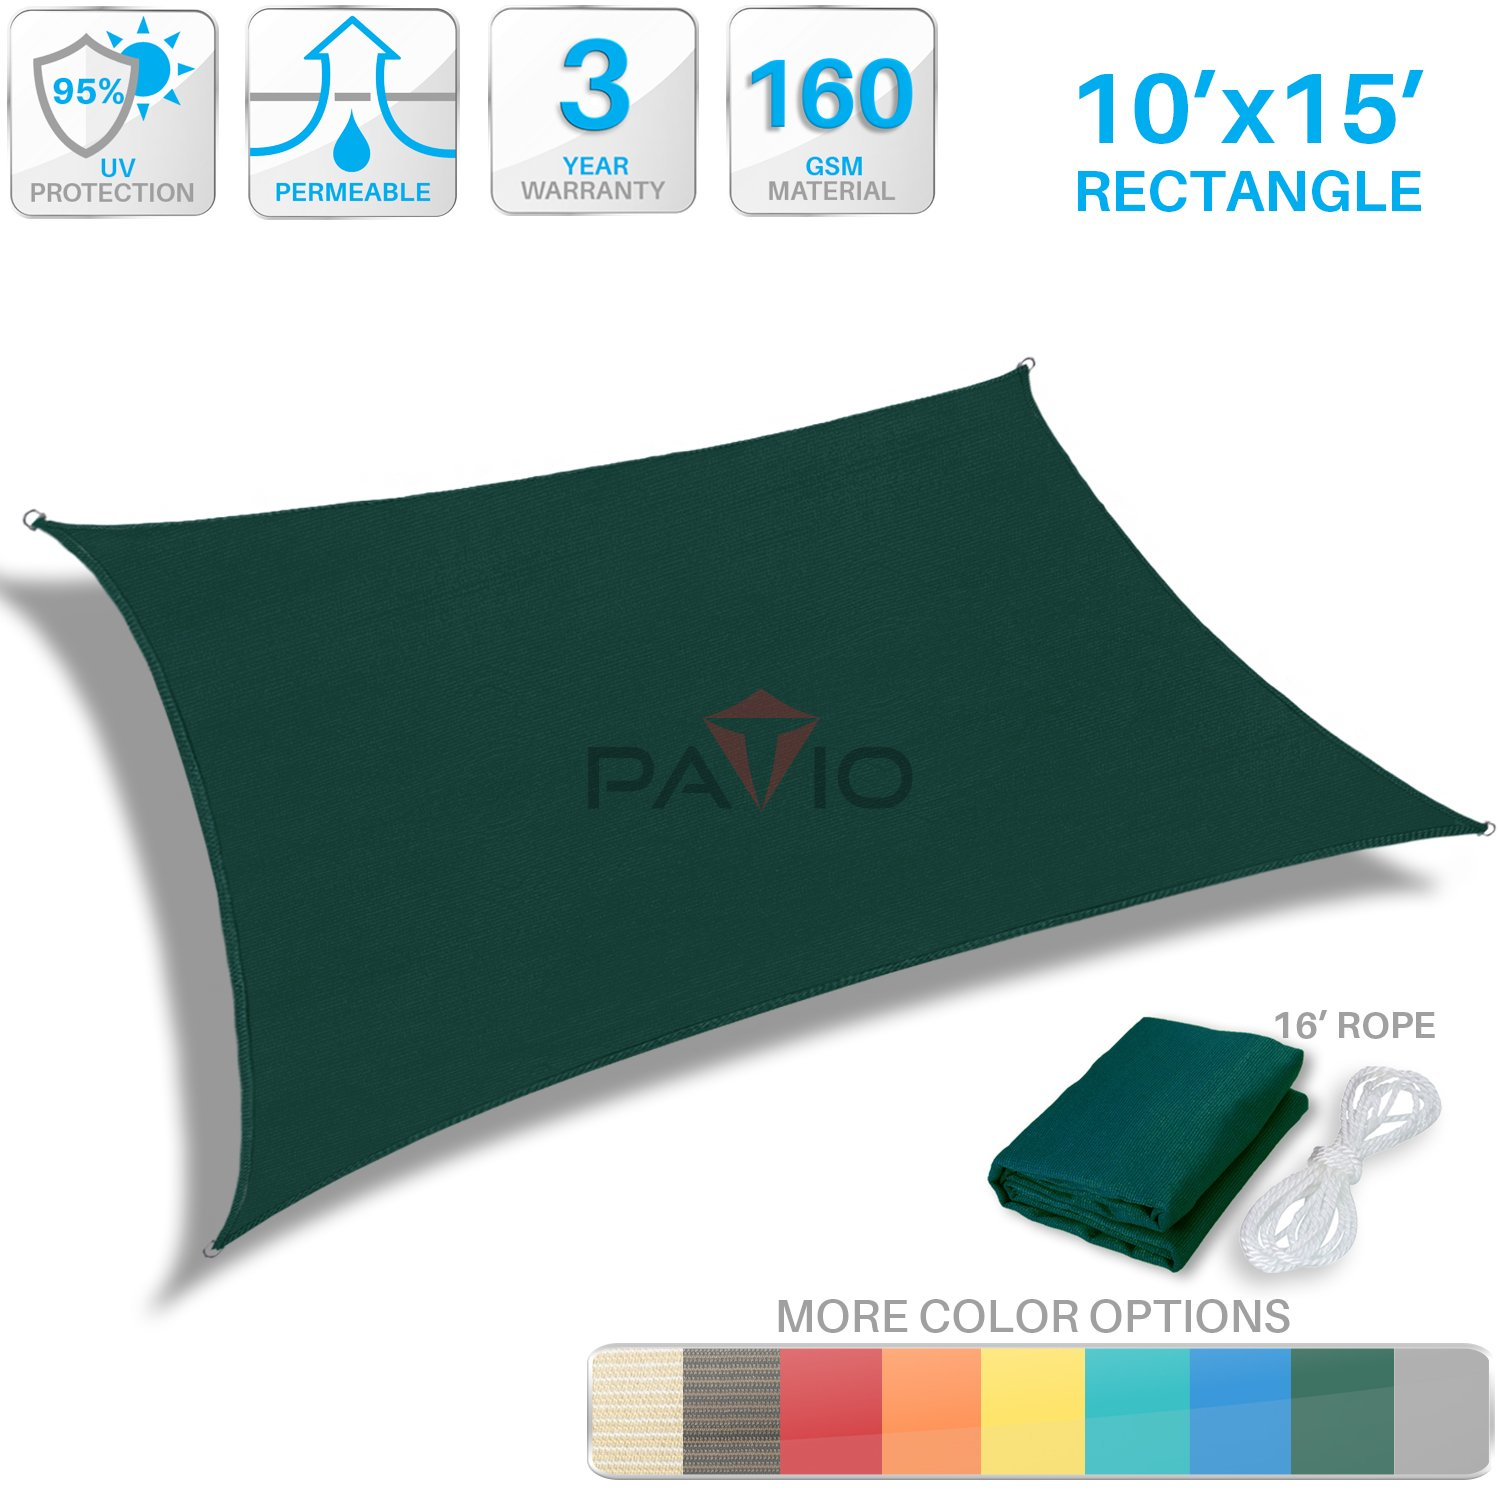 Patio Paradise 10' x 15' Dark green Sun Shade Sail Rectangle Square Canopy - Permeable UV Block Fabric Durable Patio Outdoor - Customized Available